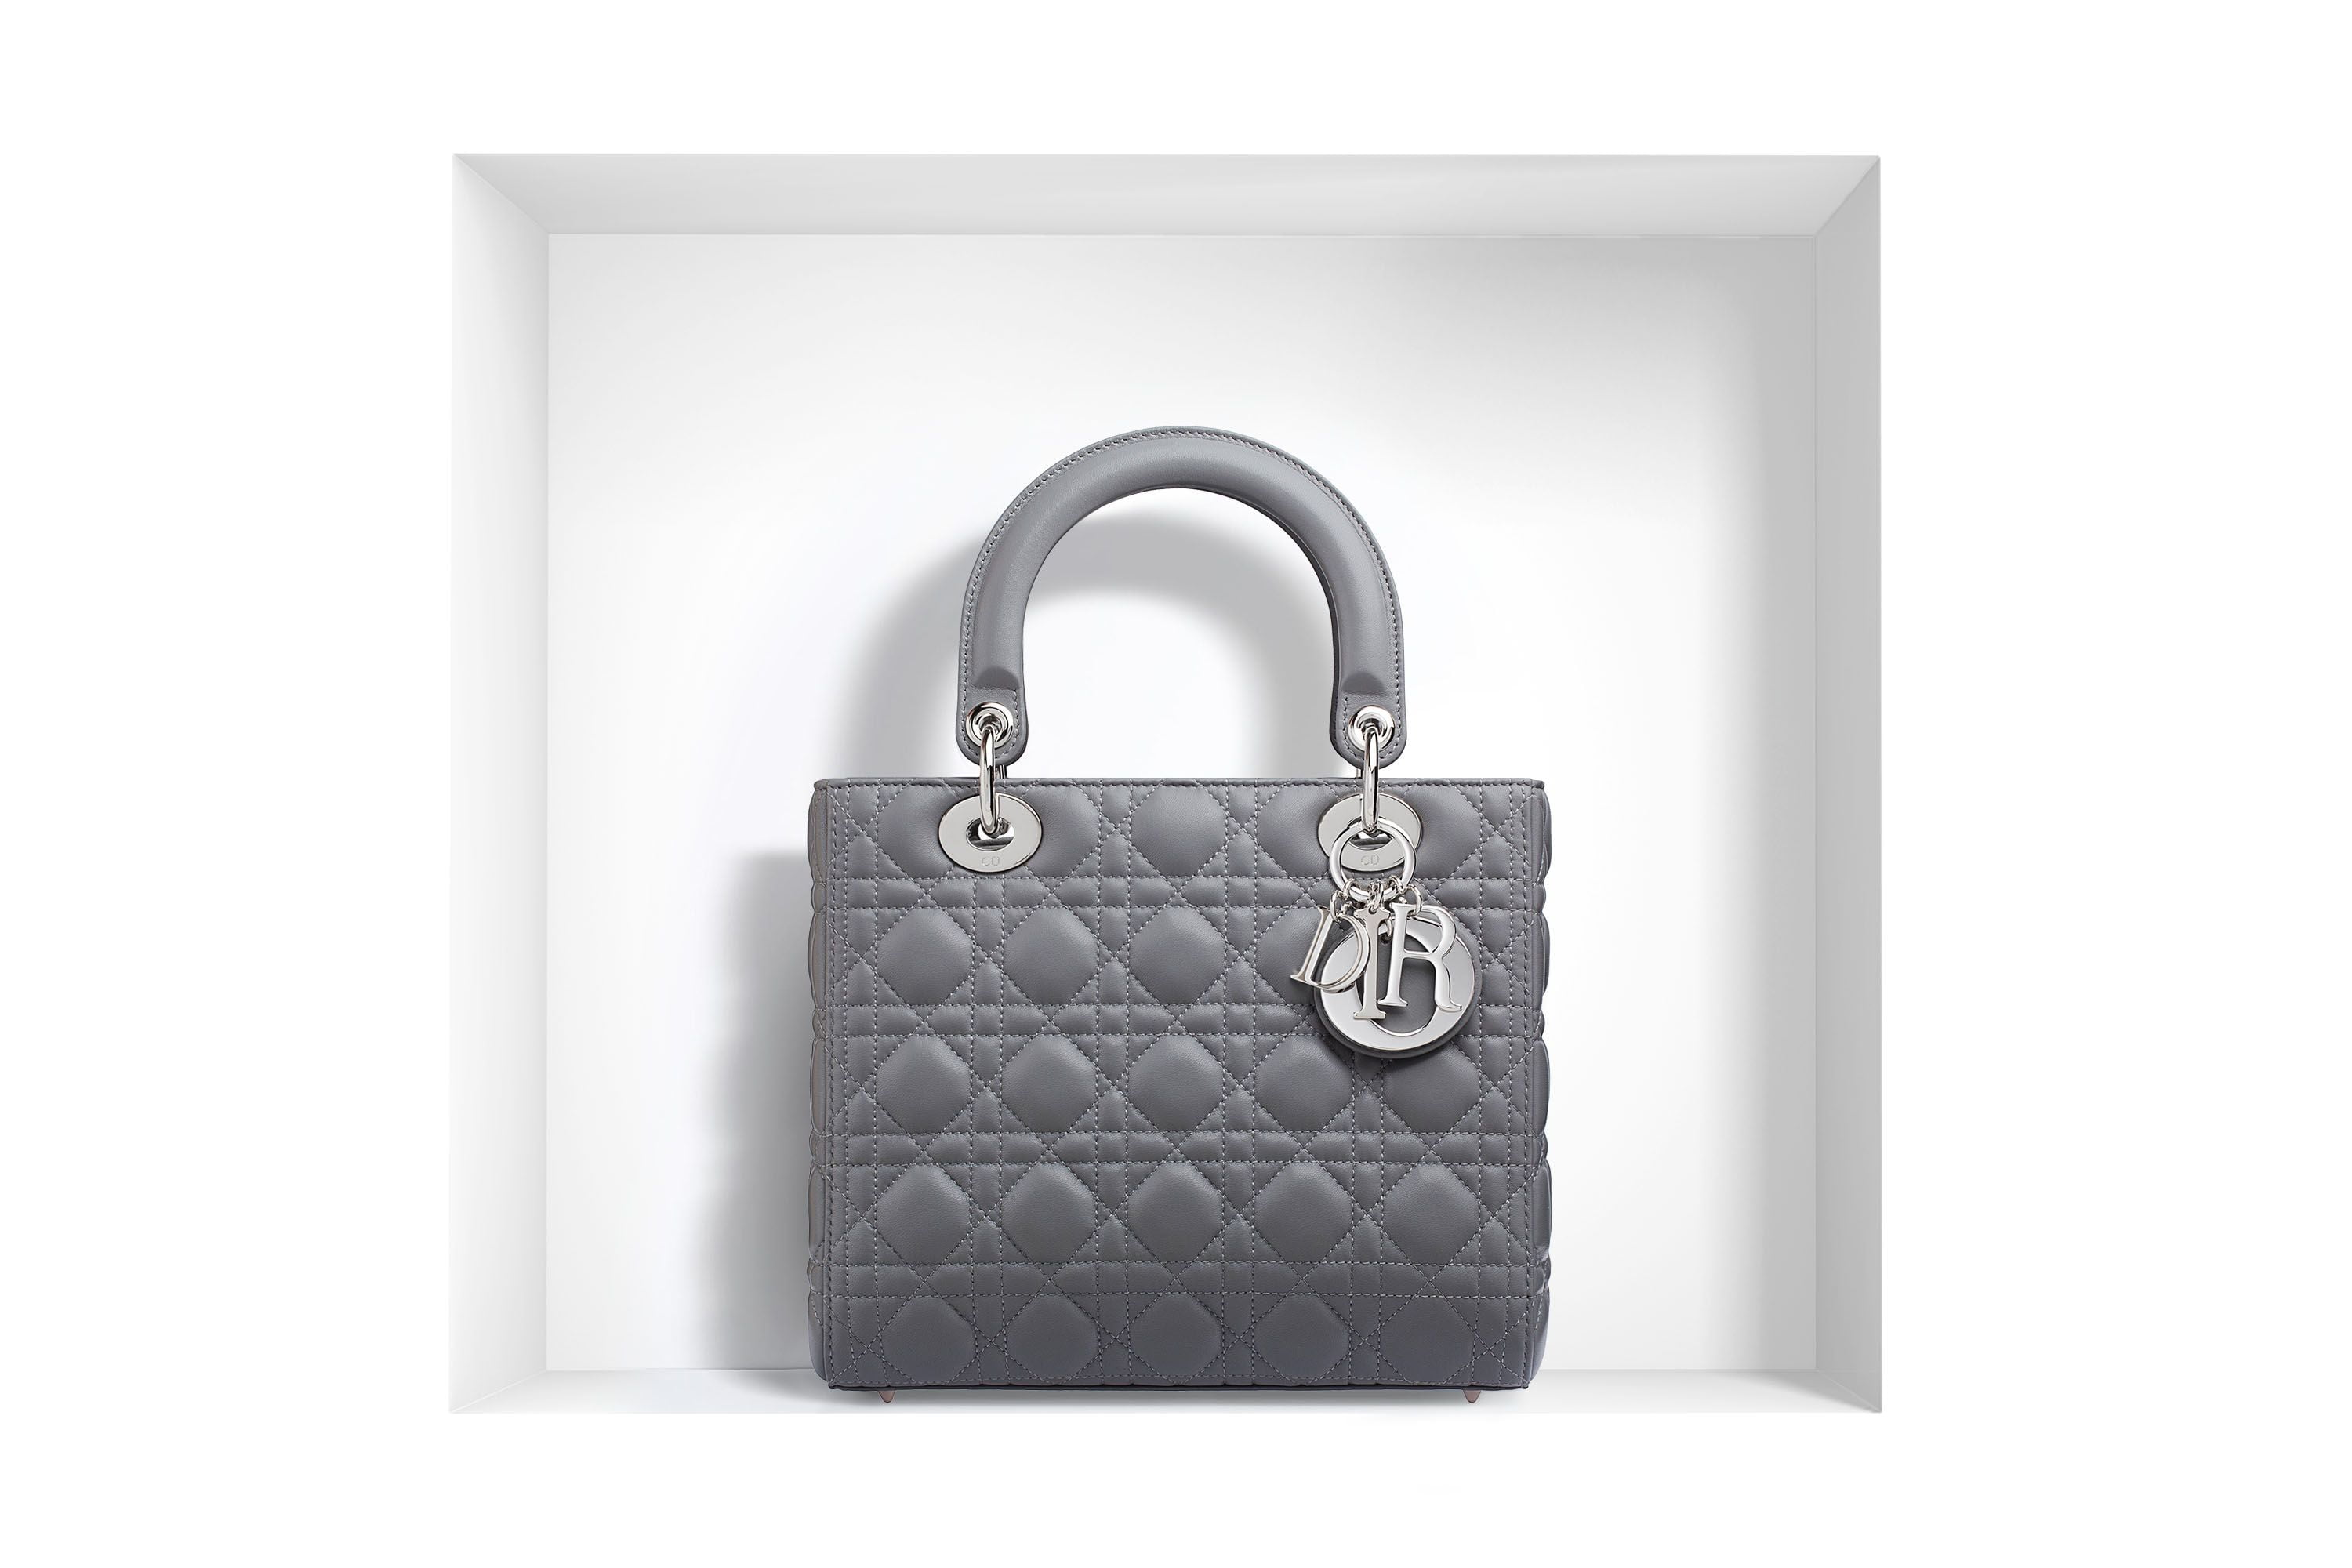 Lady Dior Reference Guide